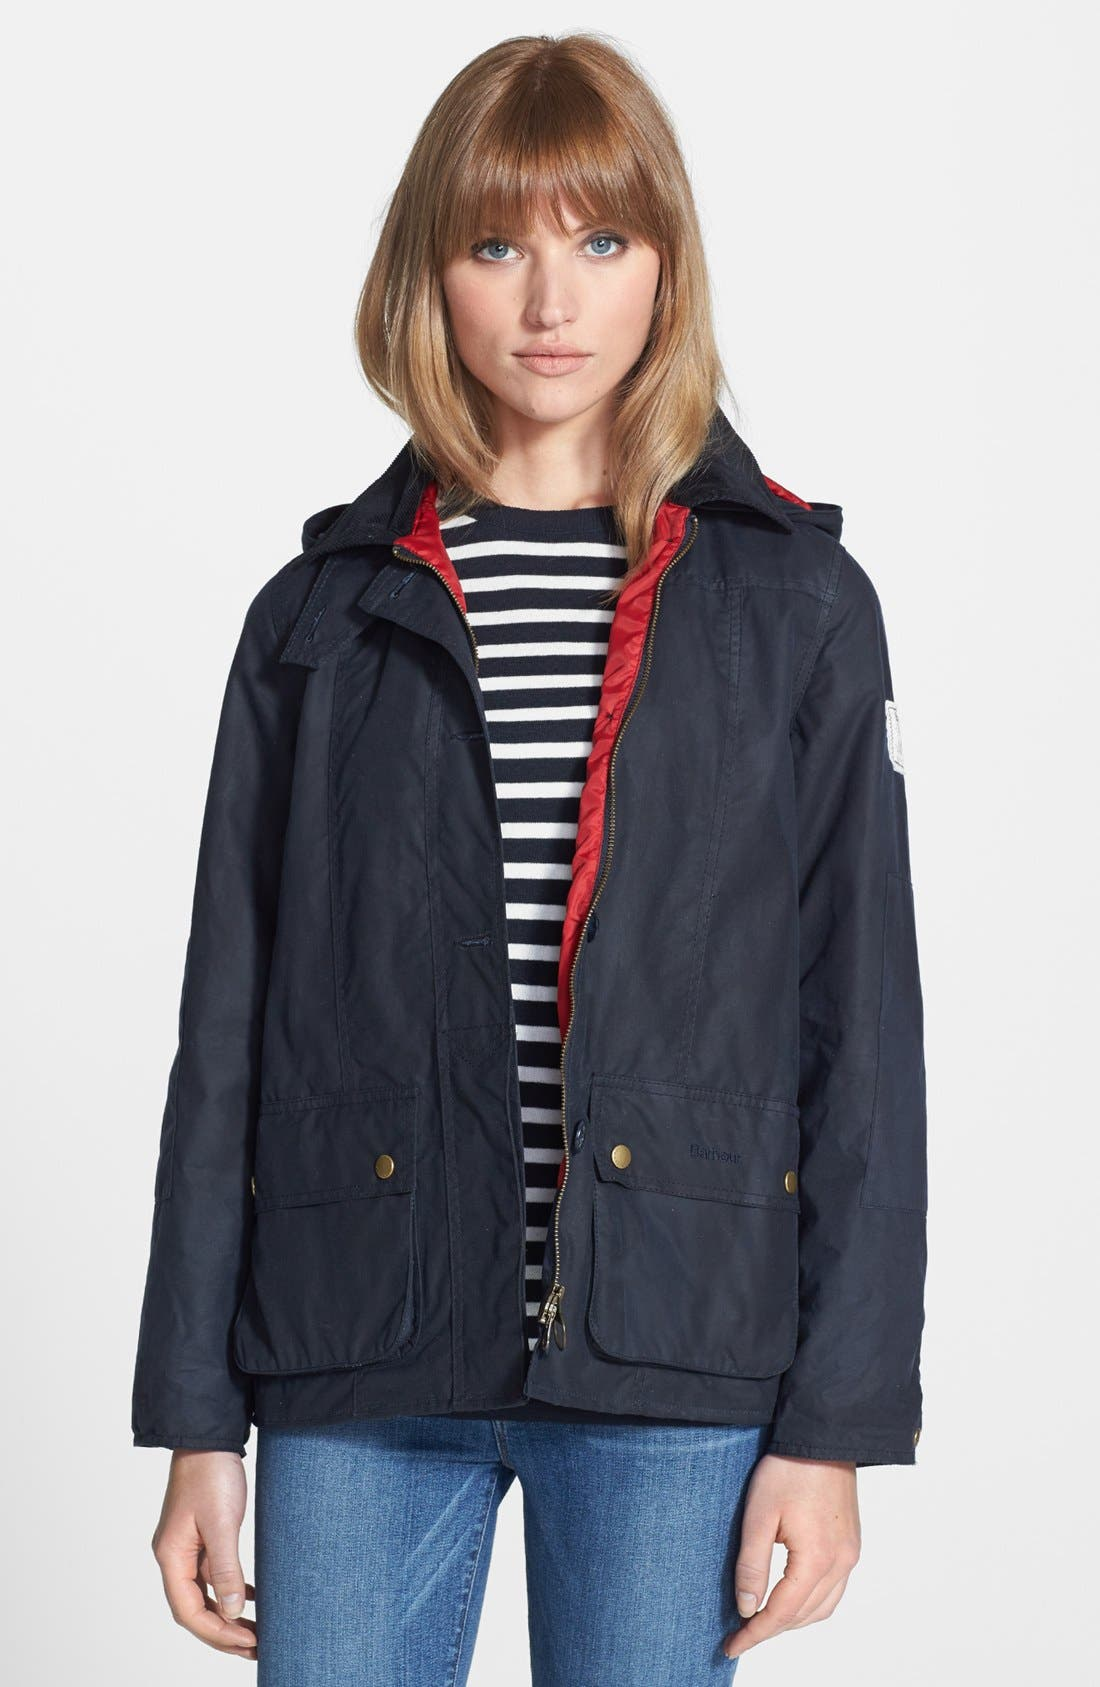 Main Image - Barbour 'Shore' Hooded Waxed Cotton Marine Jacket